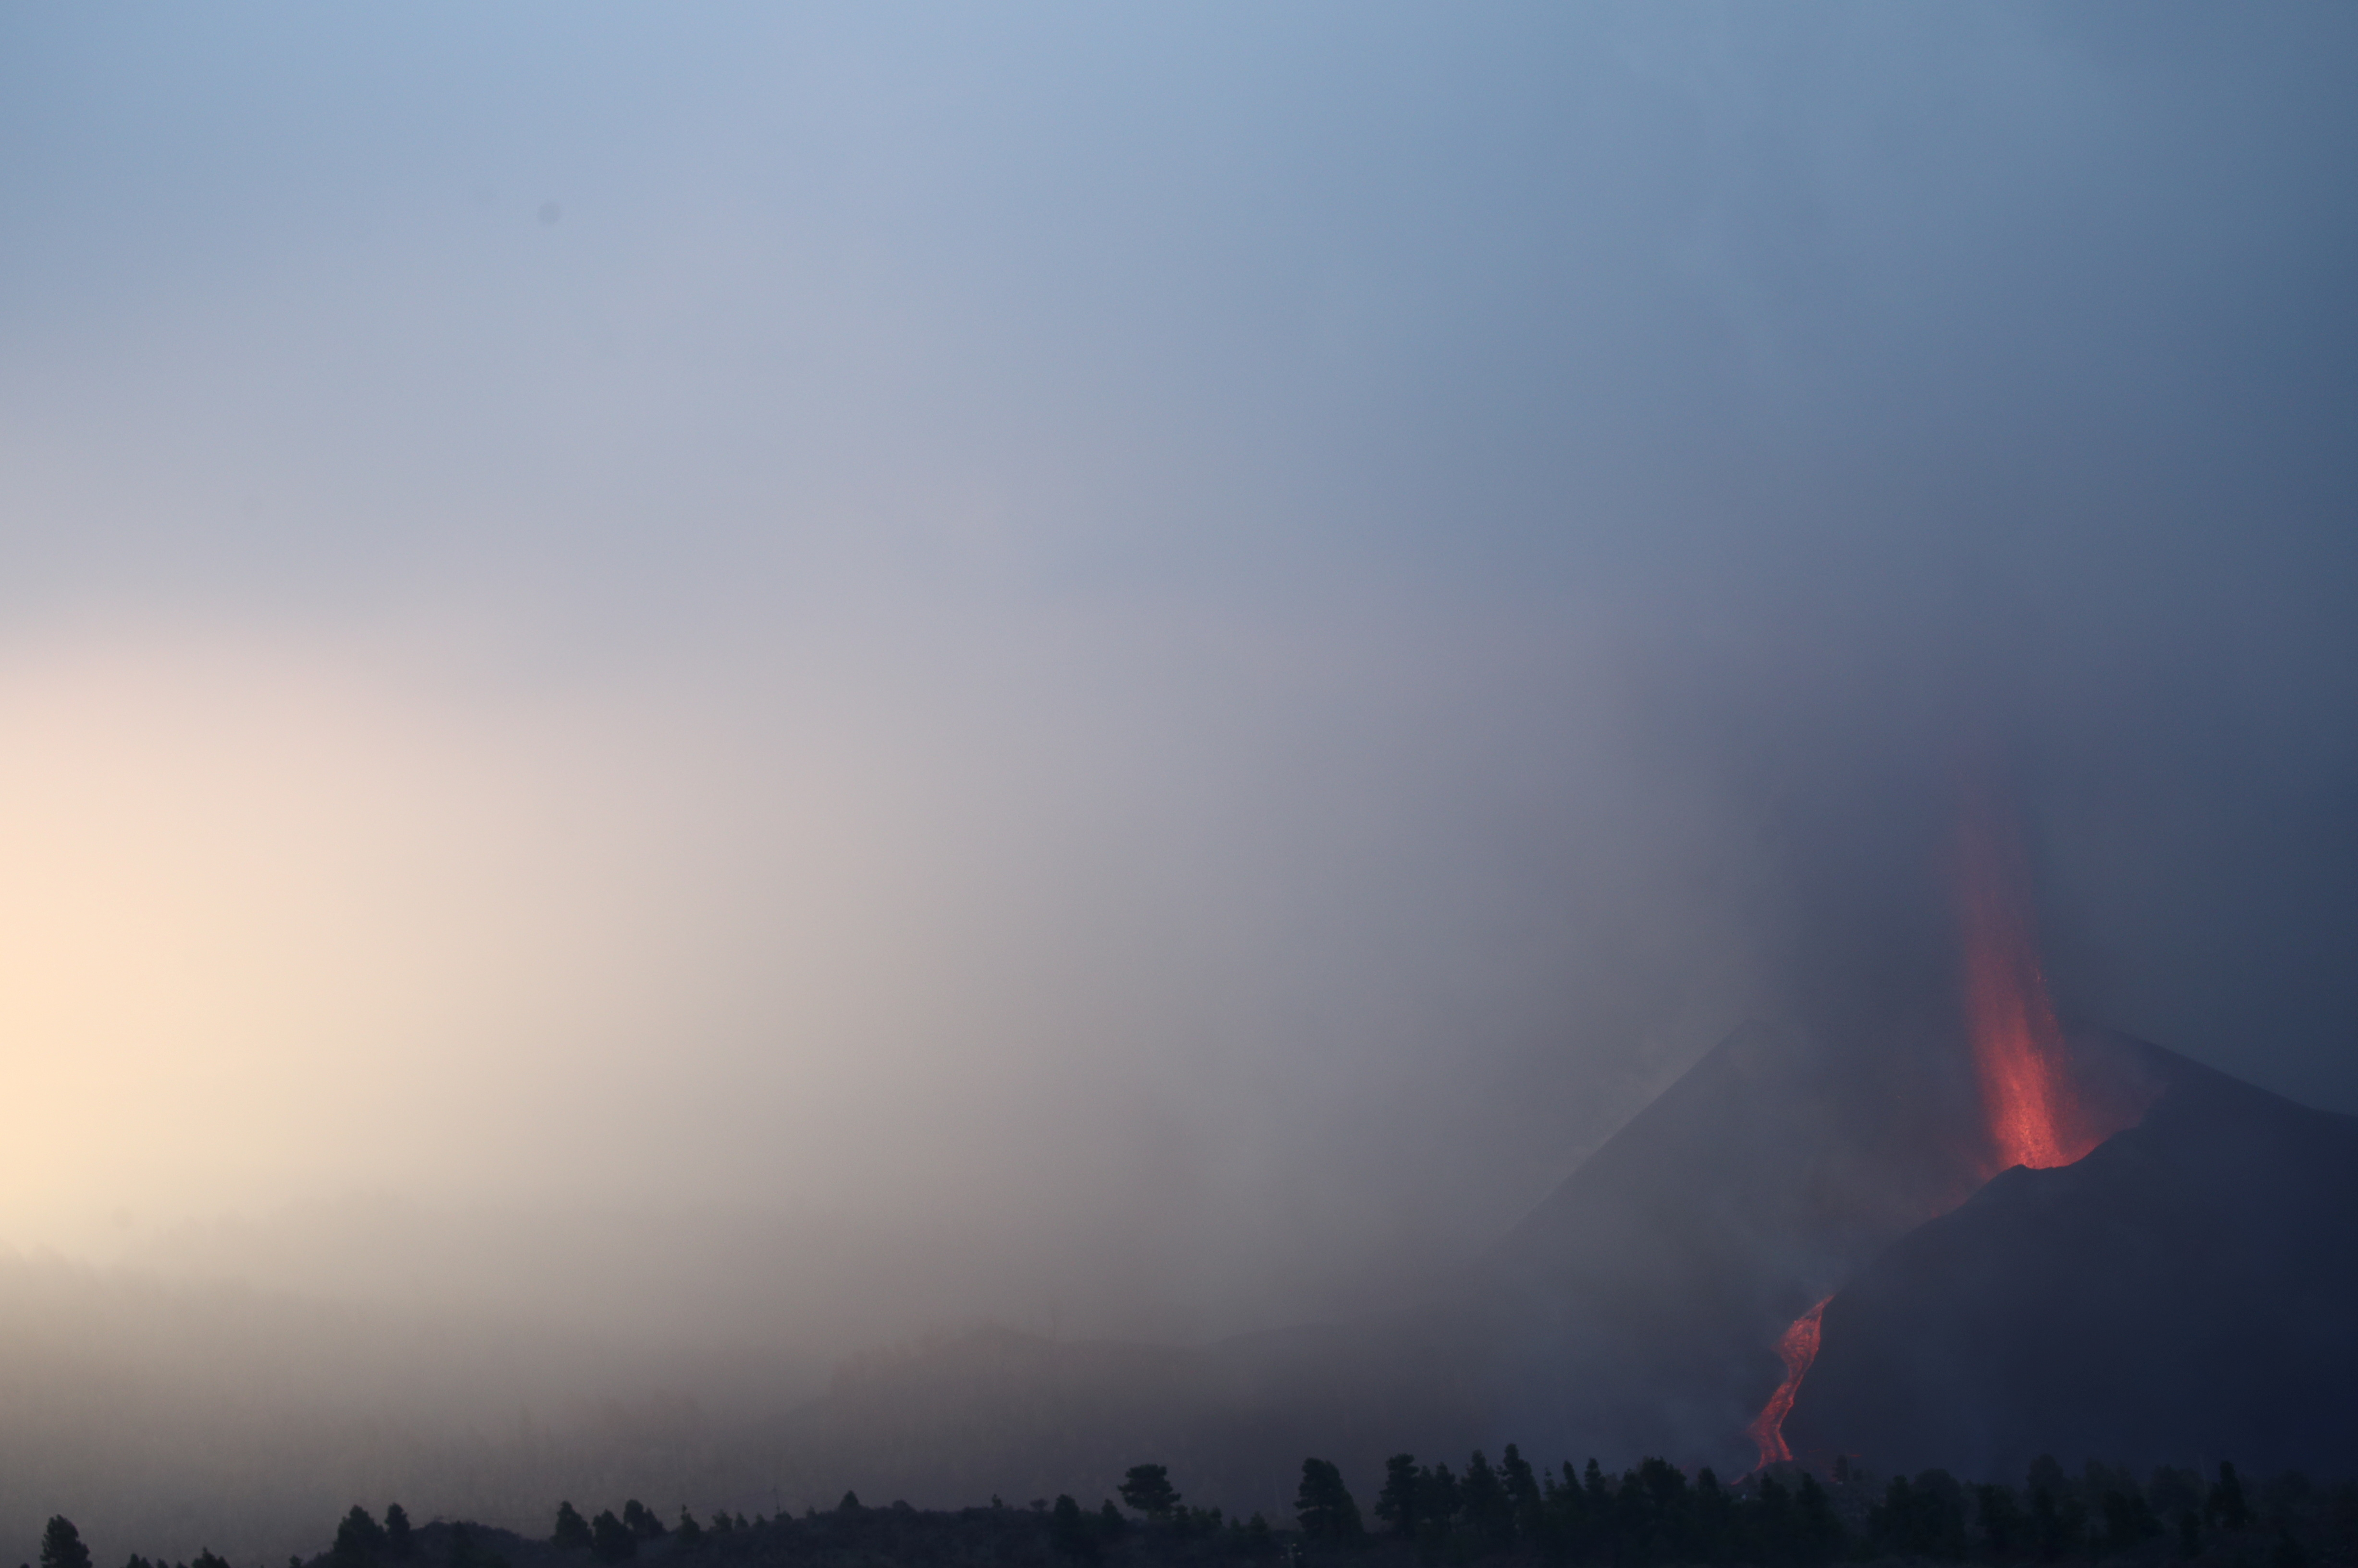 The Cumbre Vieja volcano spews lava and smoke as it continues to erupt on the Canary Island of La Palma, as seen from Tajuya, Spain, October 11, 2021. REUTERS/Sergio Perez